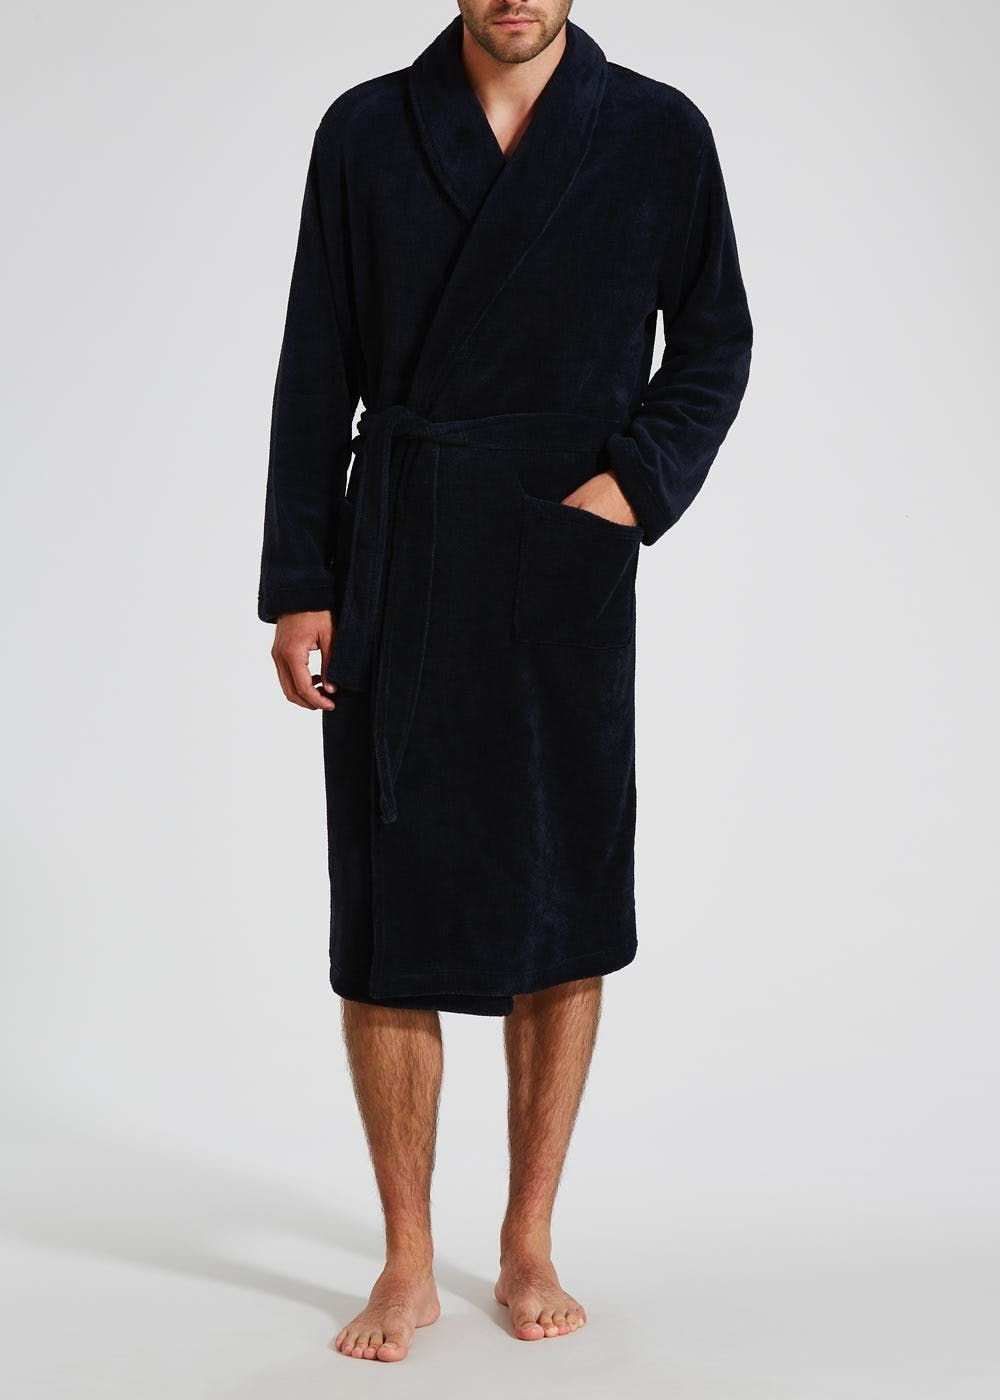 Mens Dressing Gowns Bath Robes Fluffy Luxury Matalan